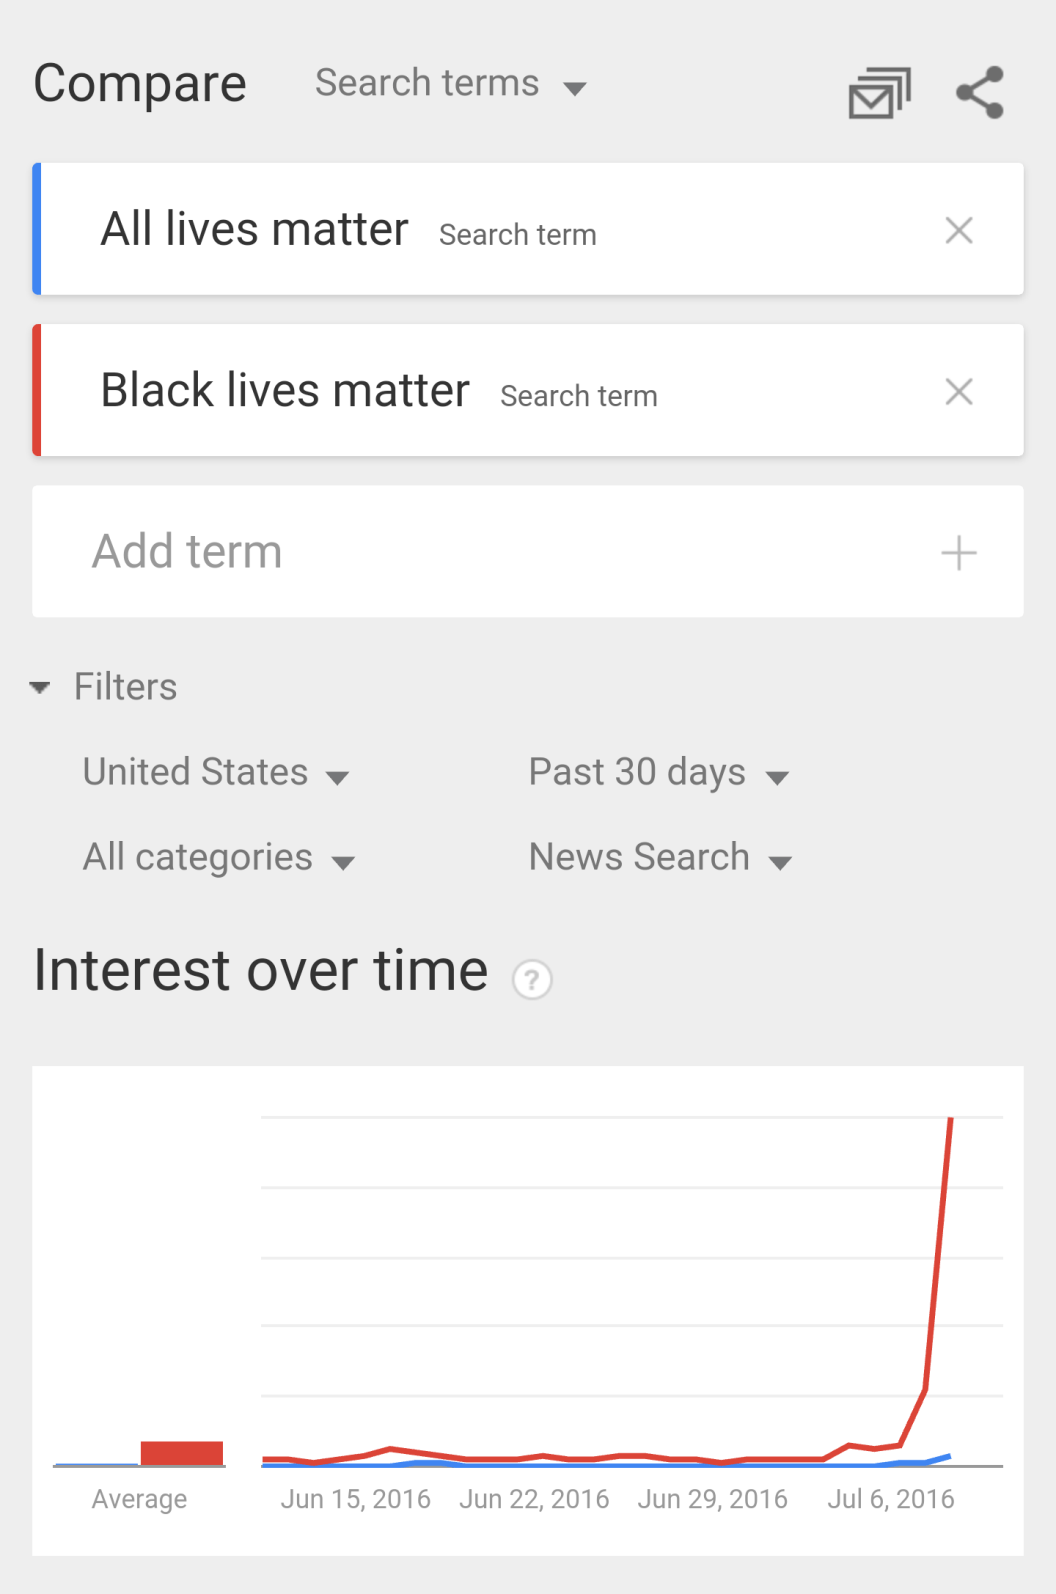 google trends black lives matter and all lives matter may through July 2016